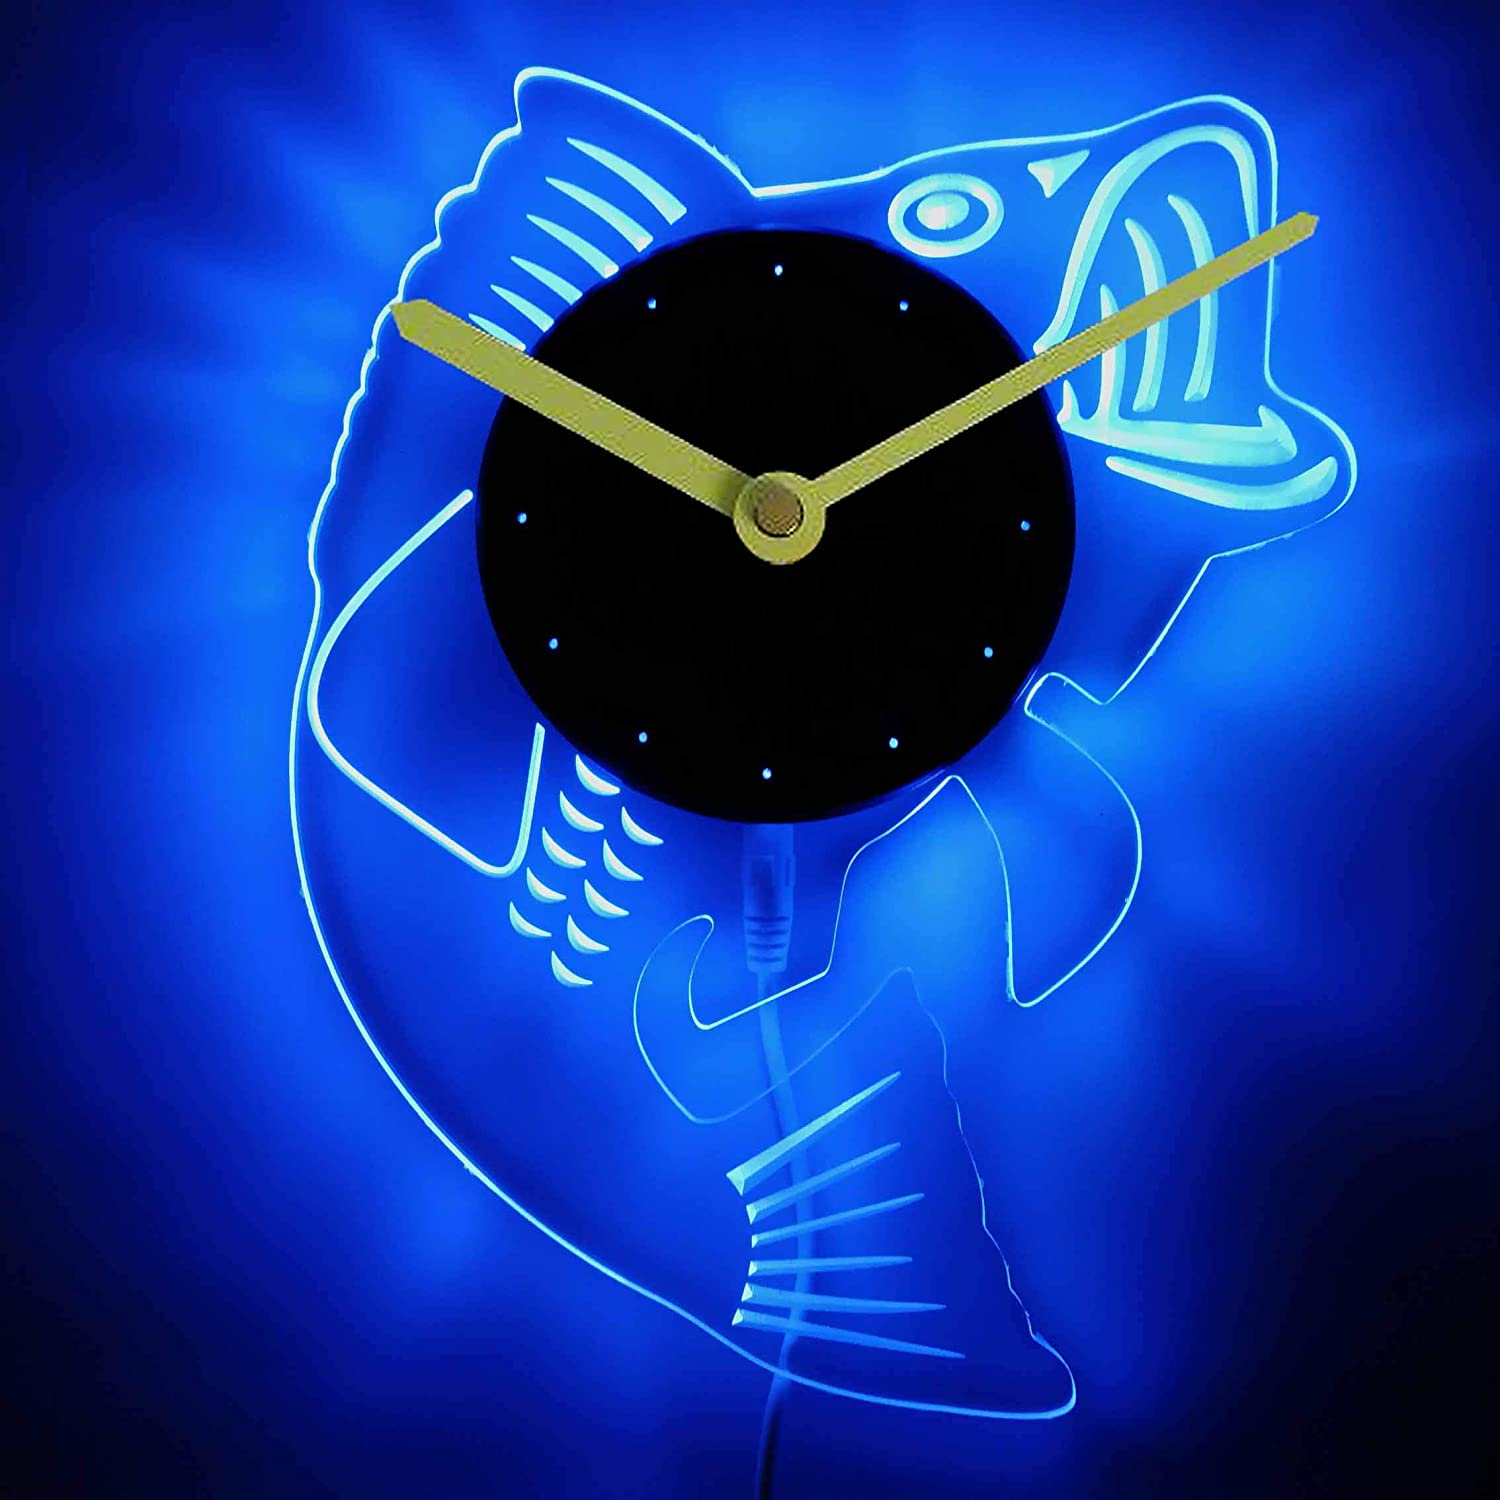 ADVPRO cnc2049-b Fish Man Cave Room Illuminated Edge Lit Bar Beer Neon Sign Wall Clock with LED Night Light